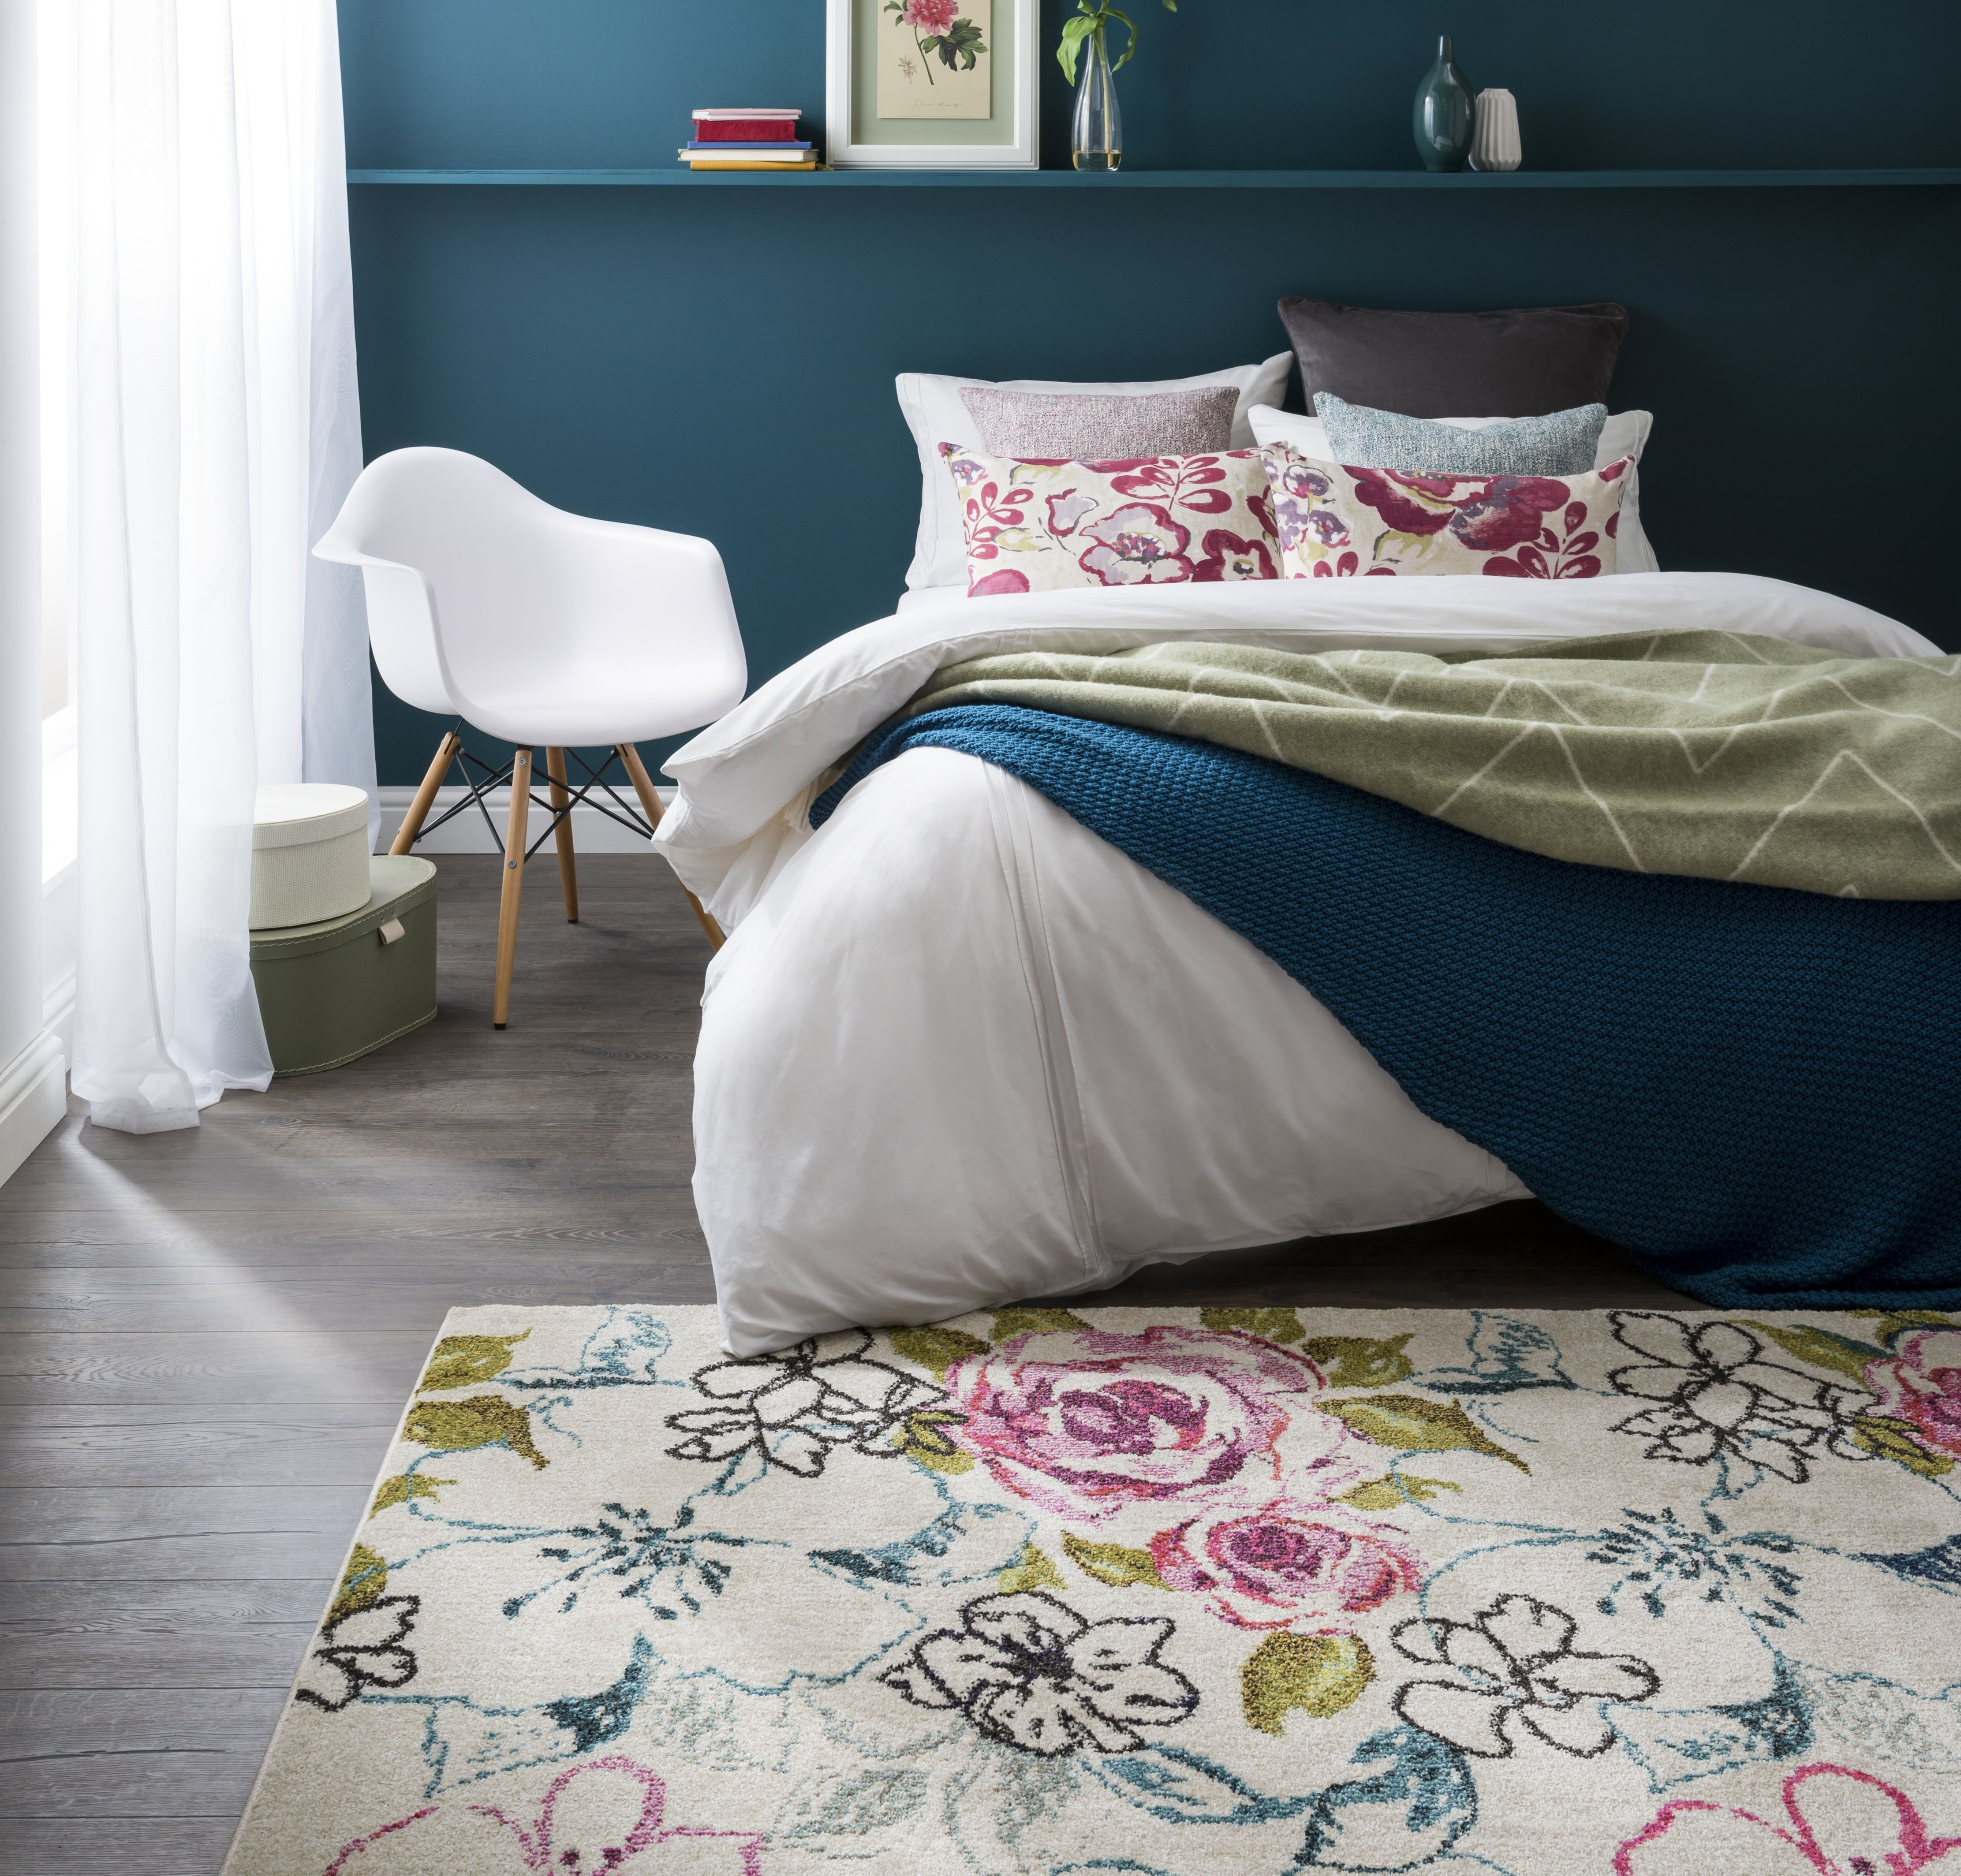 Pin by Carpetright on Our latest rugs Floral rug, Rugs